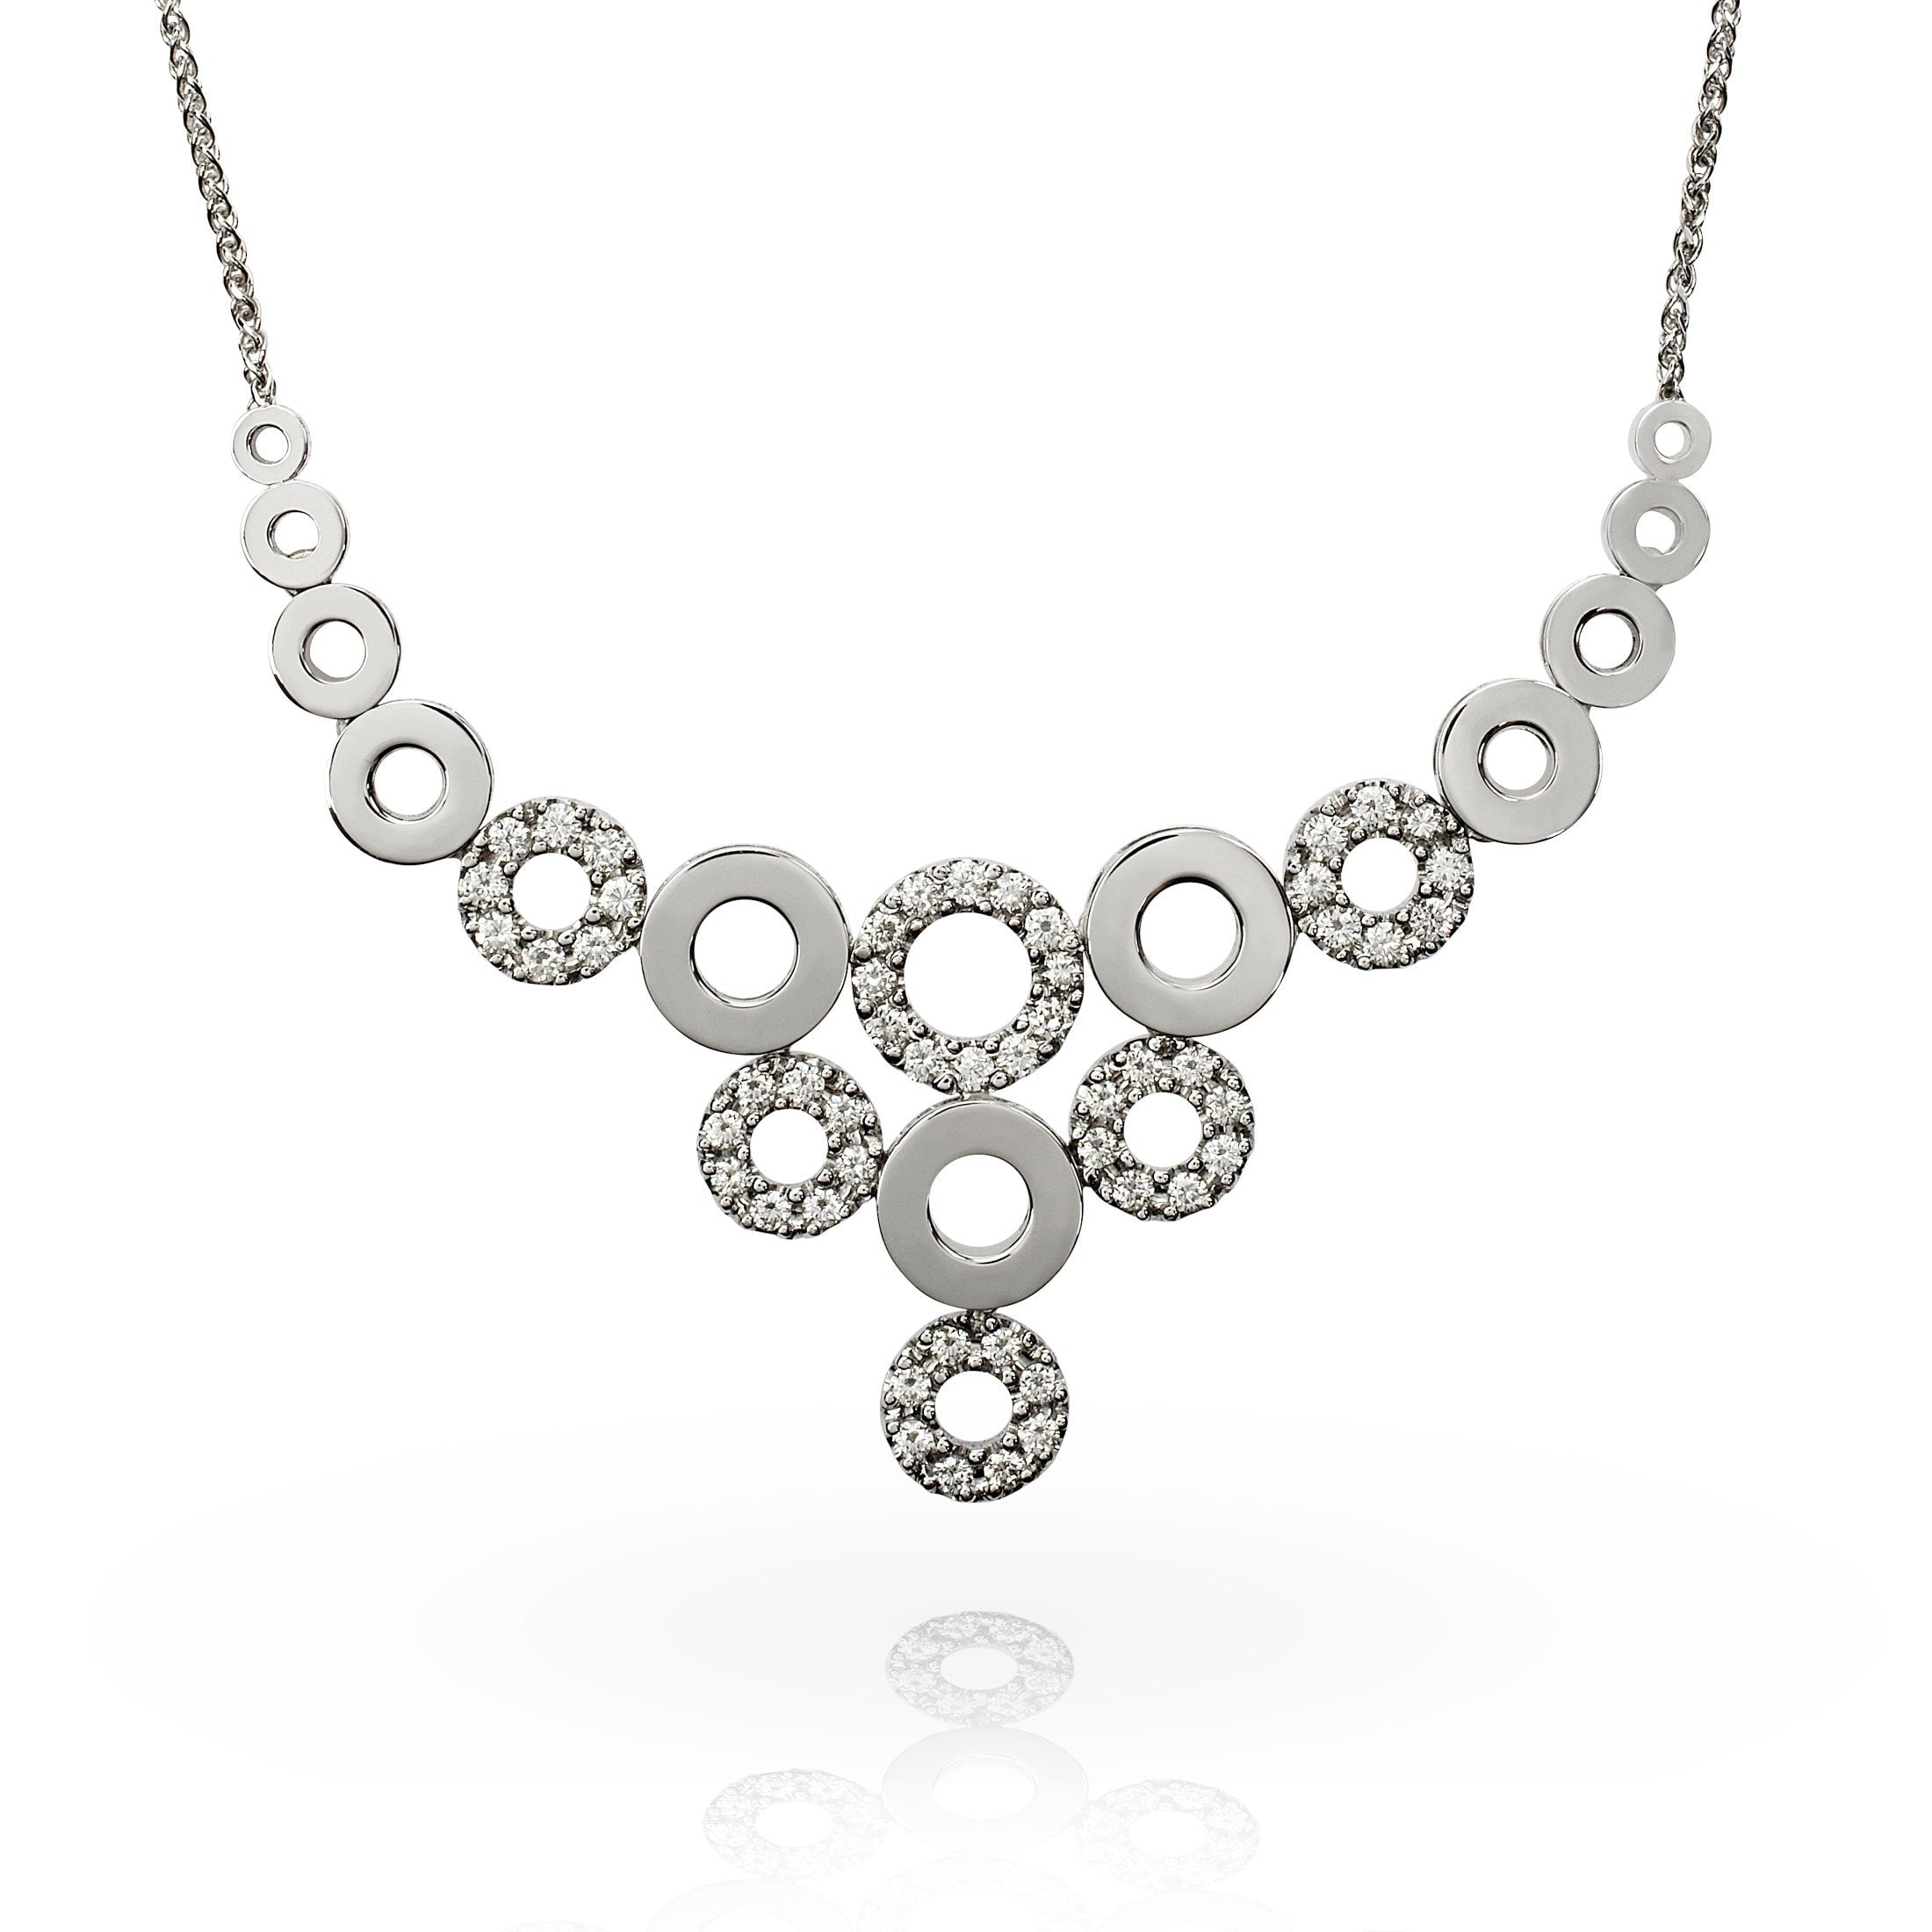 Smales 18ct White Gold Diamond Multi Circle Necklace